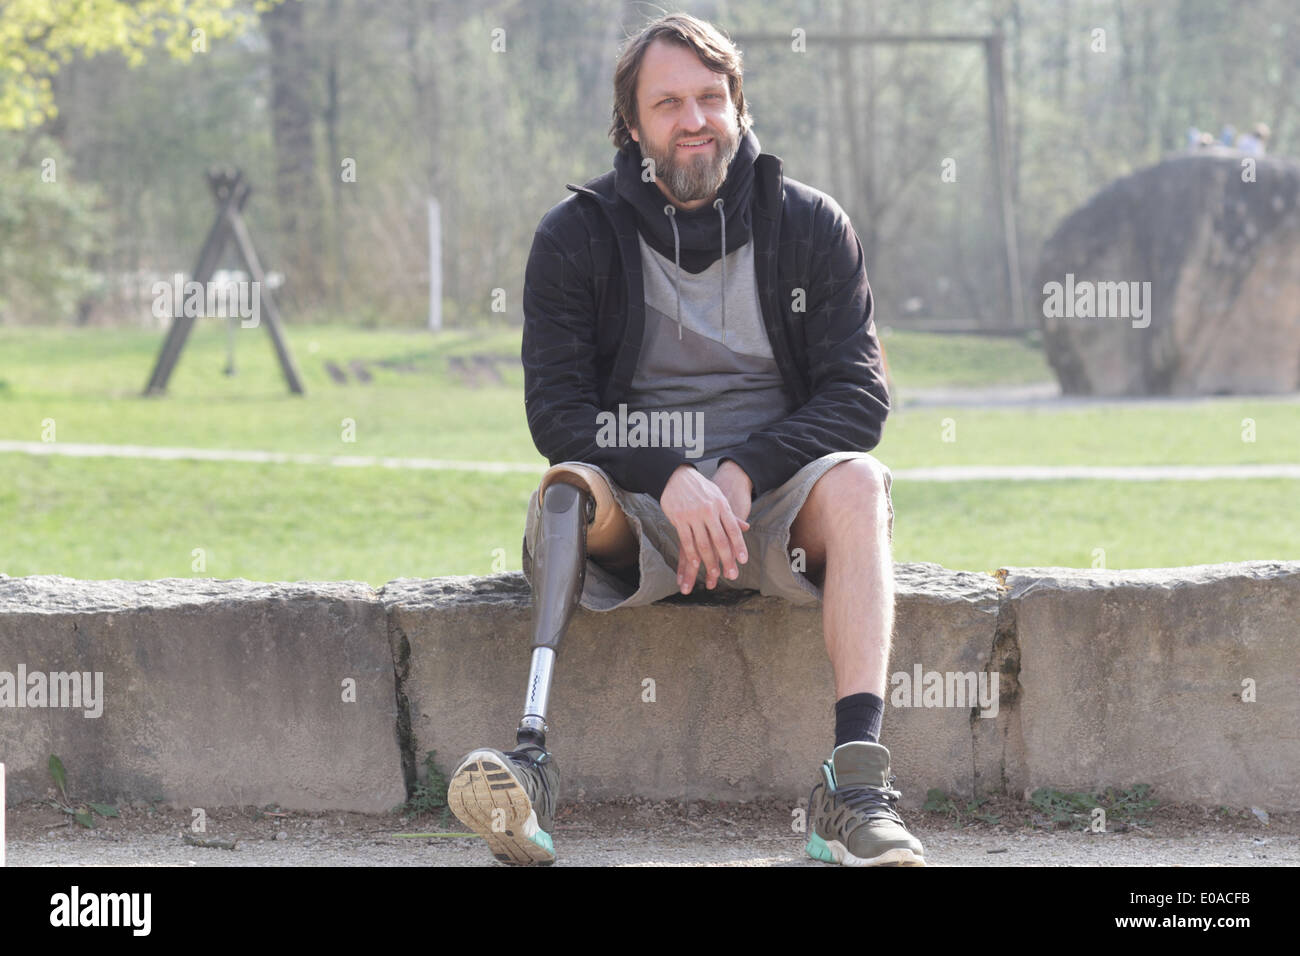 Portrait of man with prosthesis leg in park - Stock Image